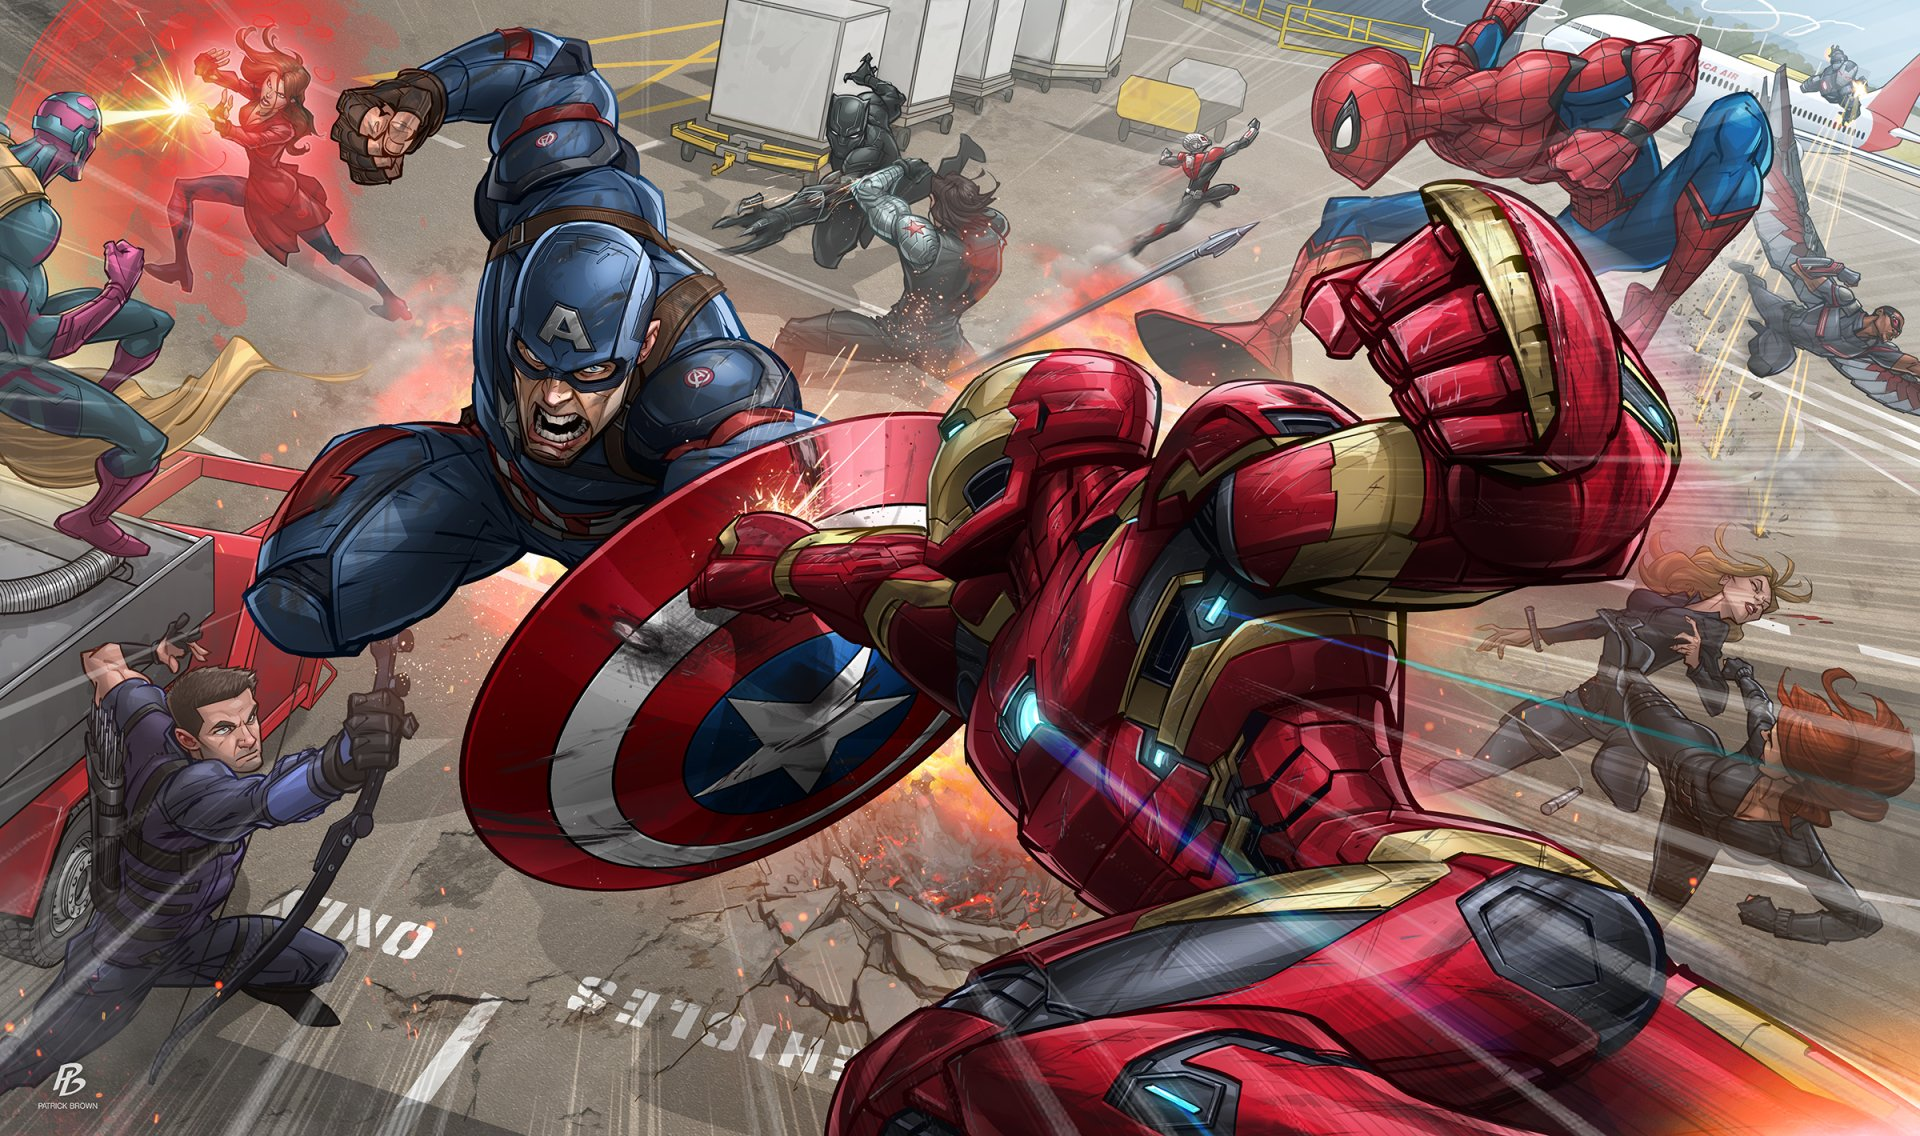 Comics - Captain America: Civil war  Superhero Marvel Comics Spider-Man Captain America Iron Man Hawkeye Ant-Man Scarlet Witch Winter Soldier Black Panther (Marvel Comics) Vision (Marvel Comics) Falcon (Marvel Comics) Agent 13 Wallpaper